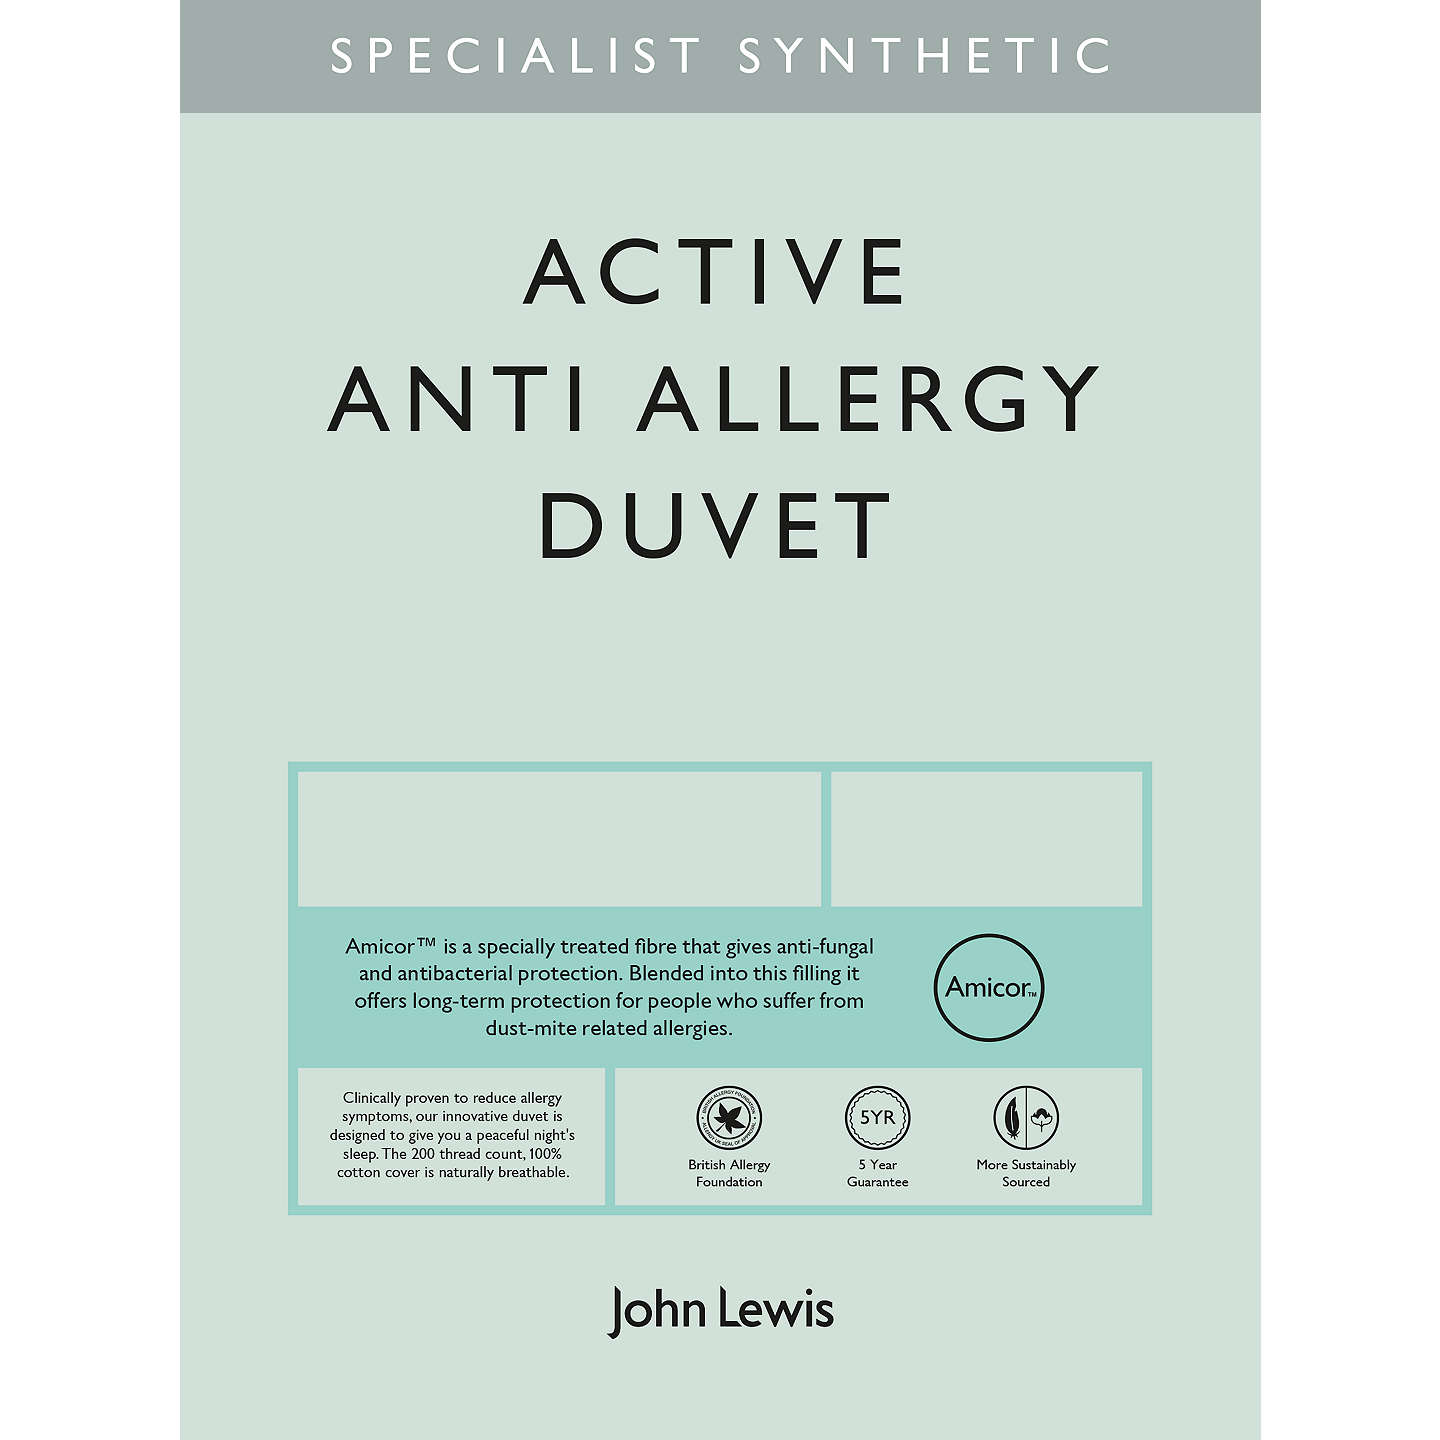 BuyJohn Lewis Specialist Synthetic Active Anti Allergy Duvet, 10.5 Tog, King Online at johnlewis.com